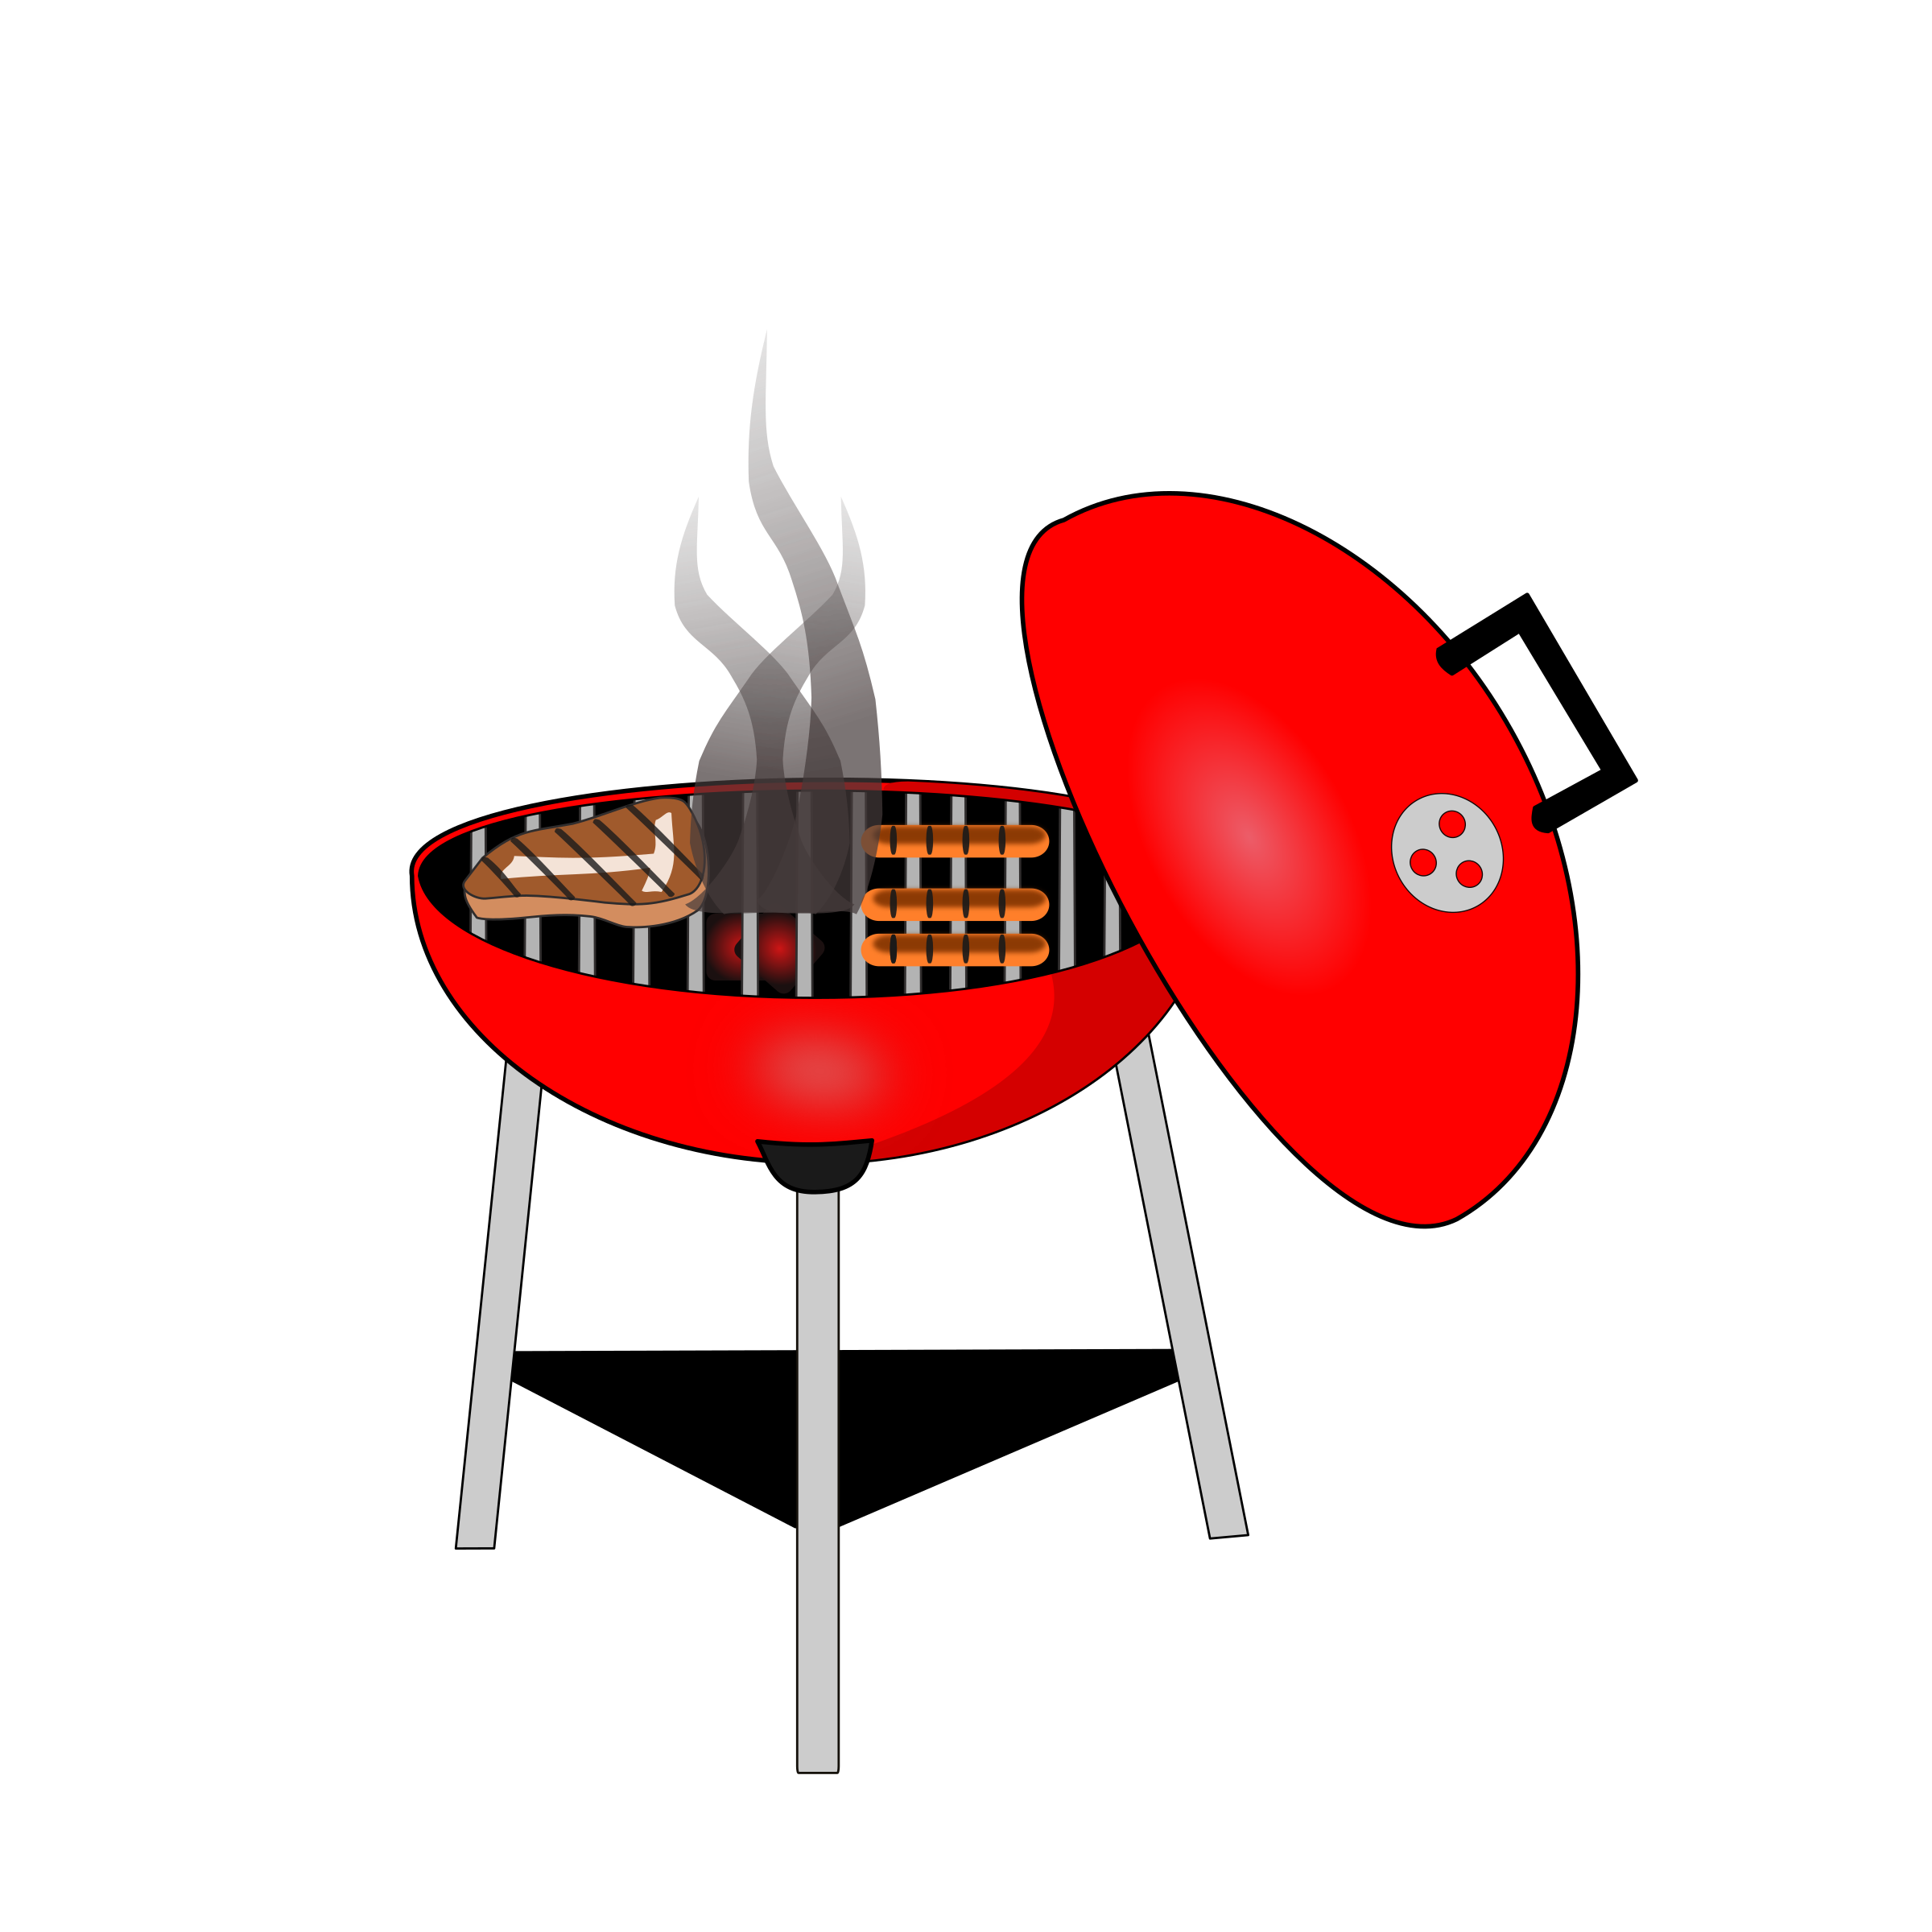 Bbq grill png. Red icons free and